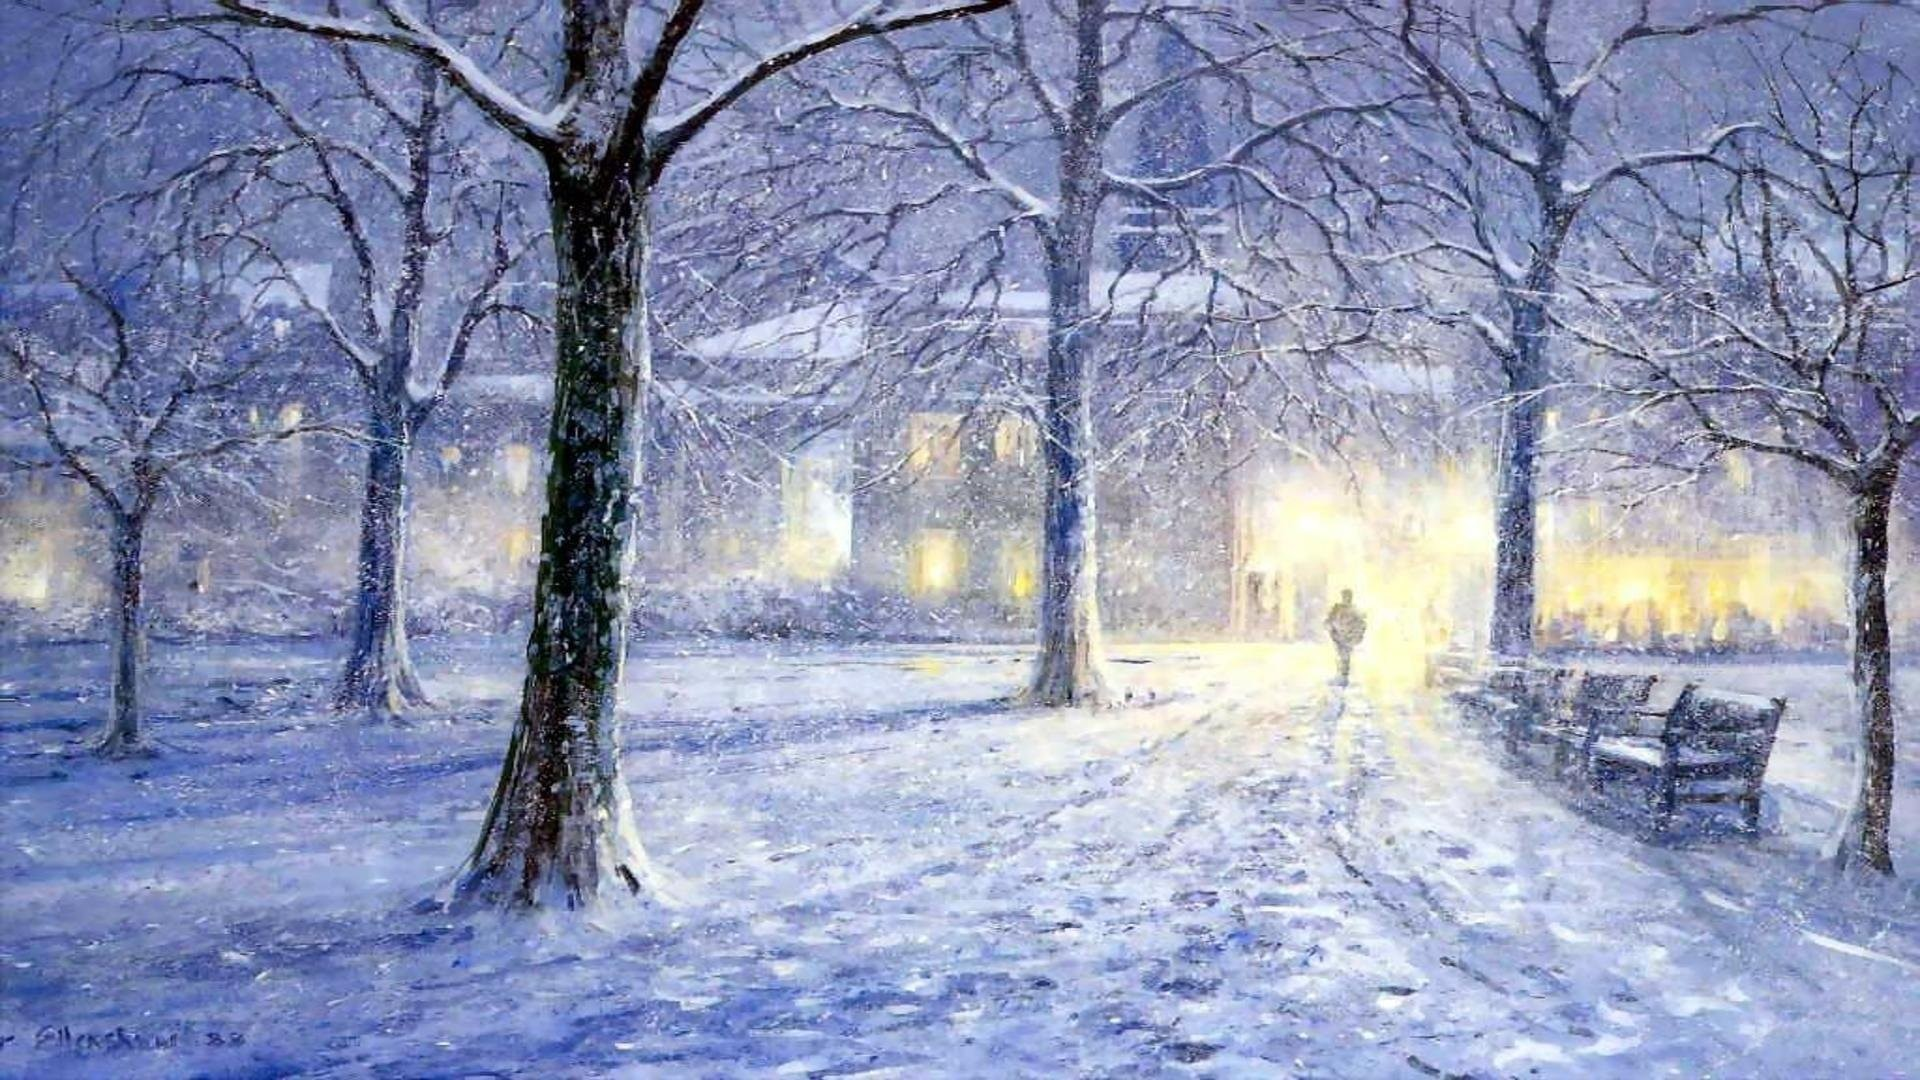 undefined Winter Backgrounds For Desktop (51 Wallpapers)   Adorable  Wallpapers